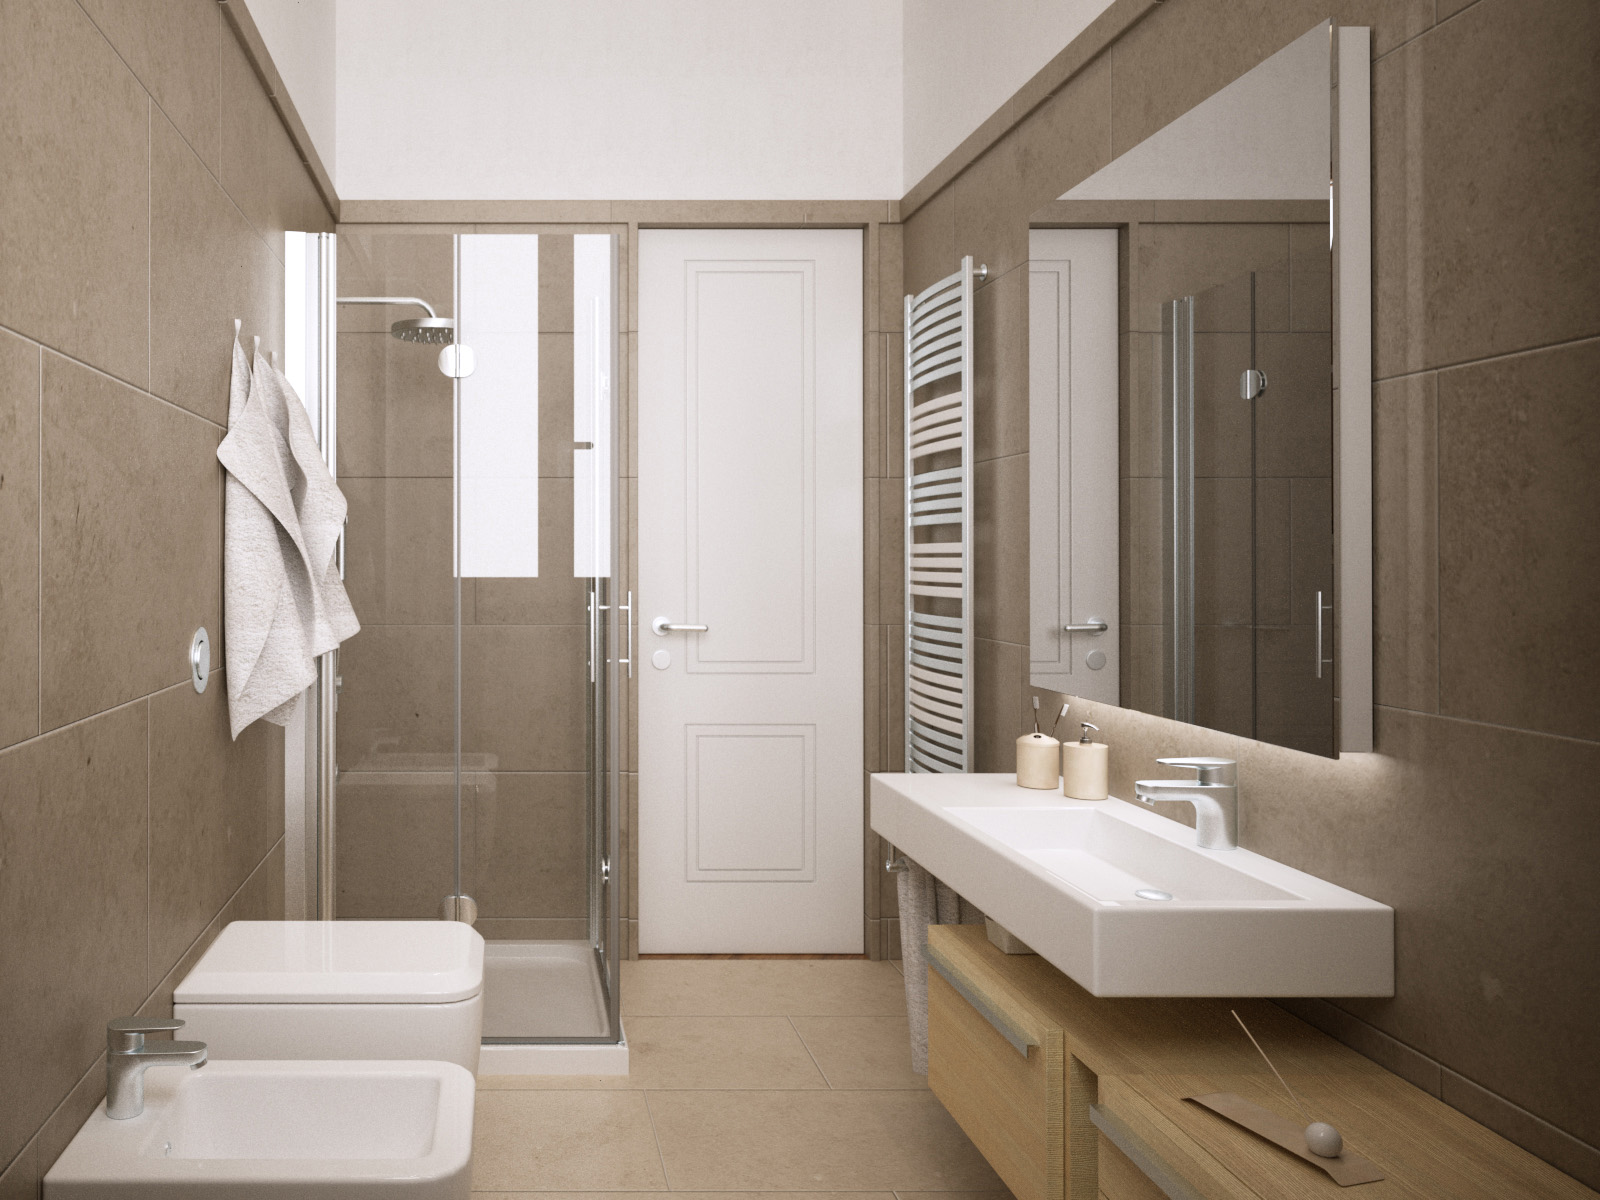 3digit bagno moderno minimale gres crema rendering firenze - Piastrelle bagno firenze ...